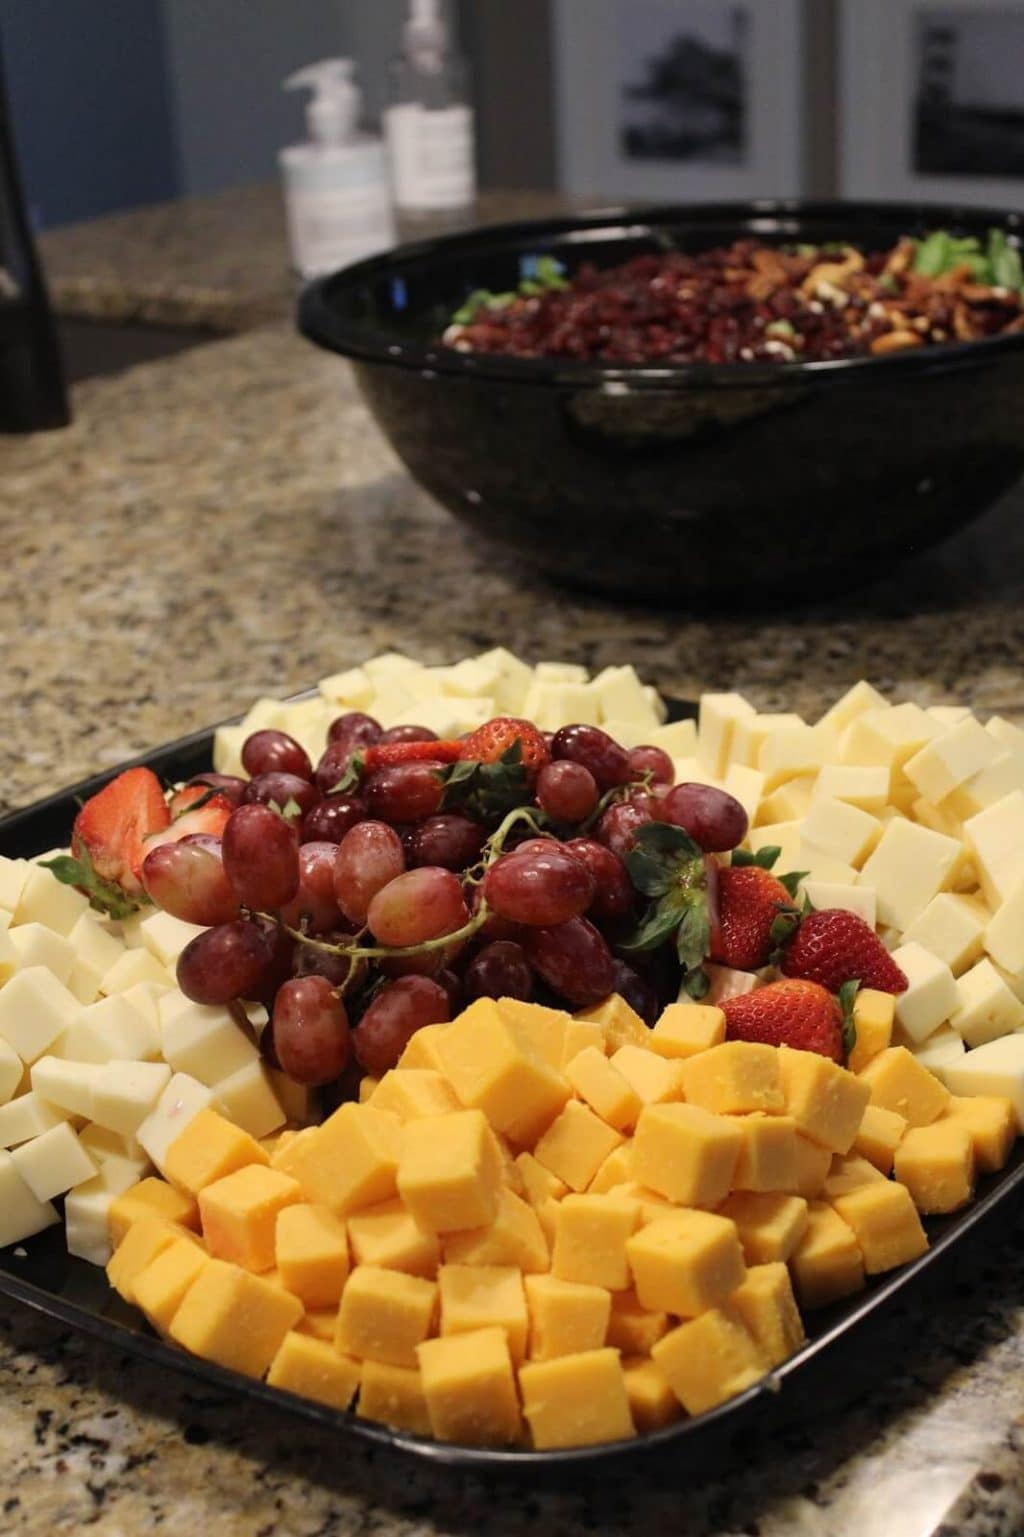 Fruit, veggies, salad, Thanksgiving catering, whole foods lake norman